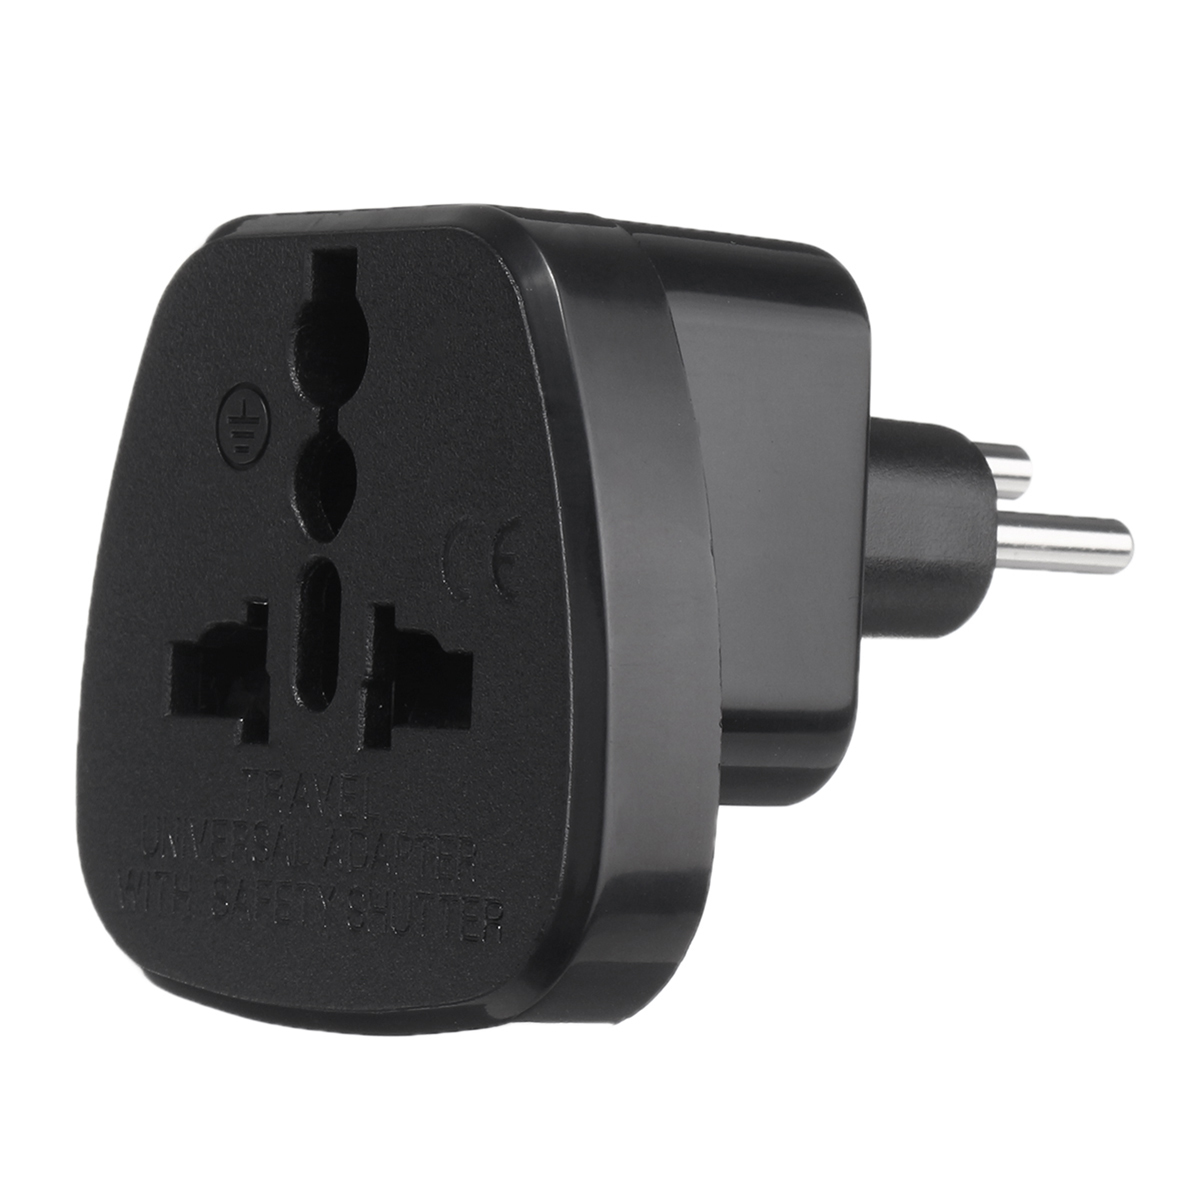 Travel Adapter Plug Adapter Travel Adaptor Adapter Wall Charger AC Power For For Switzerland Swiss